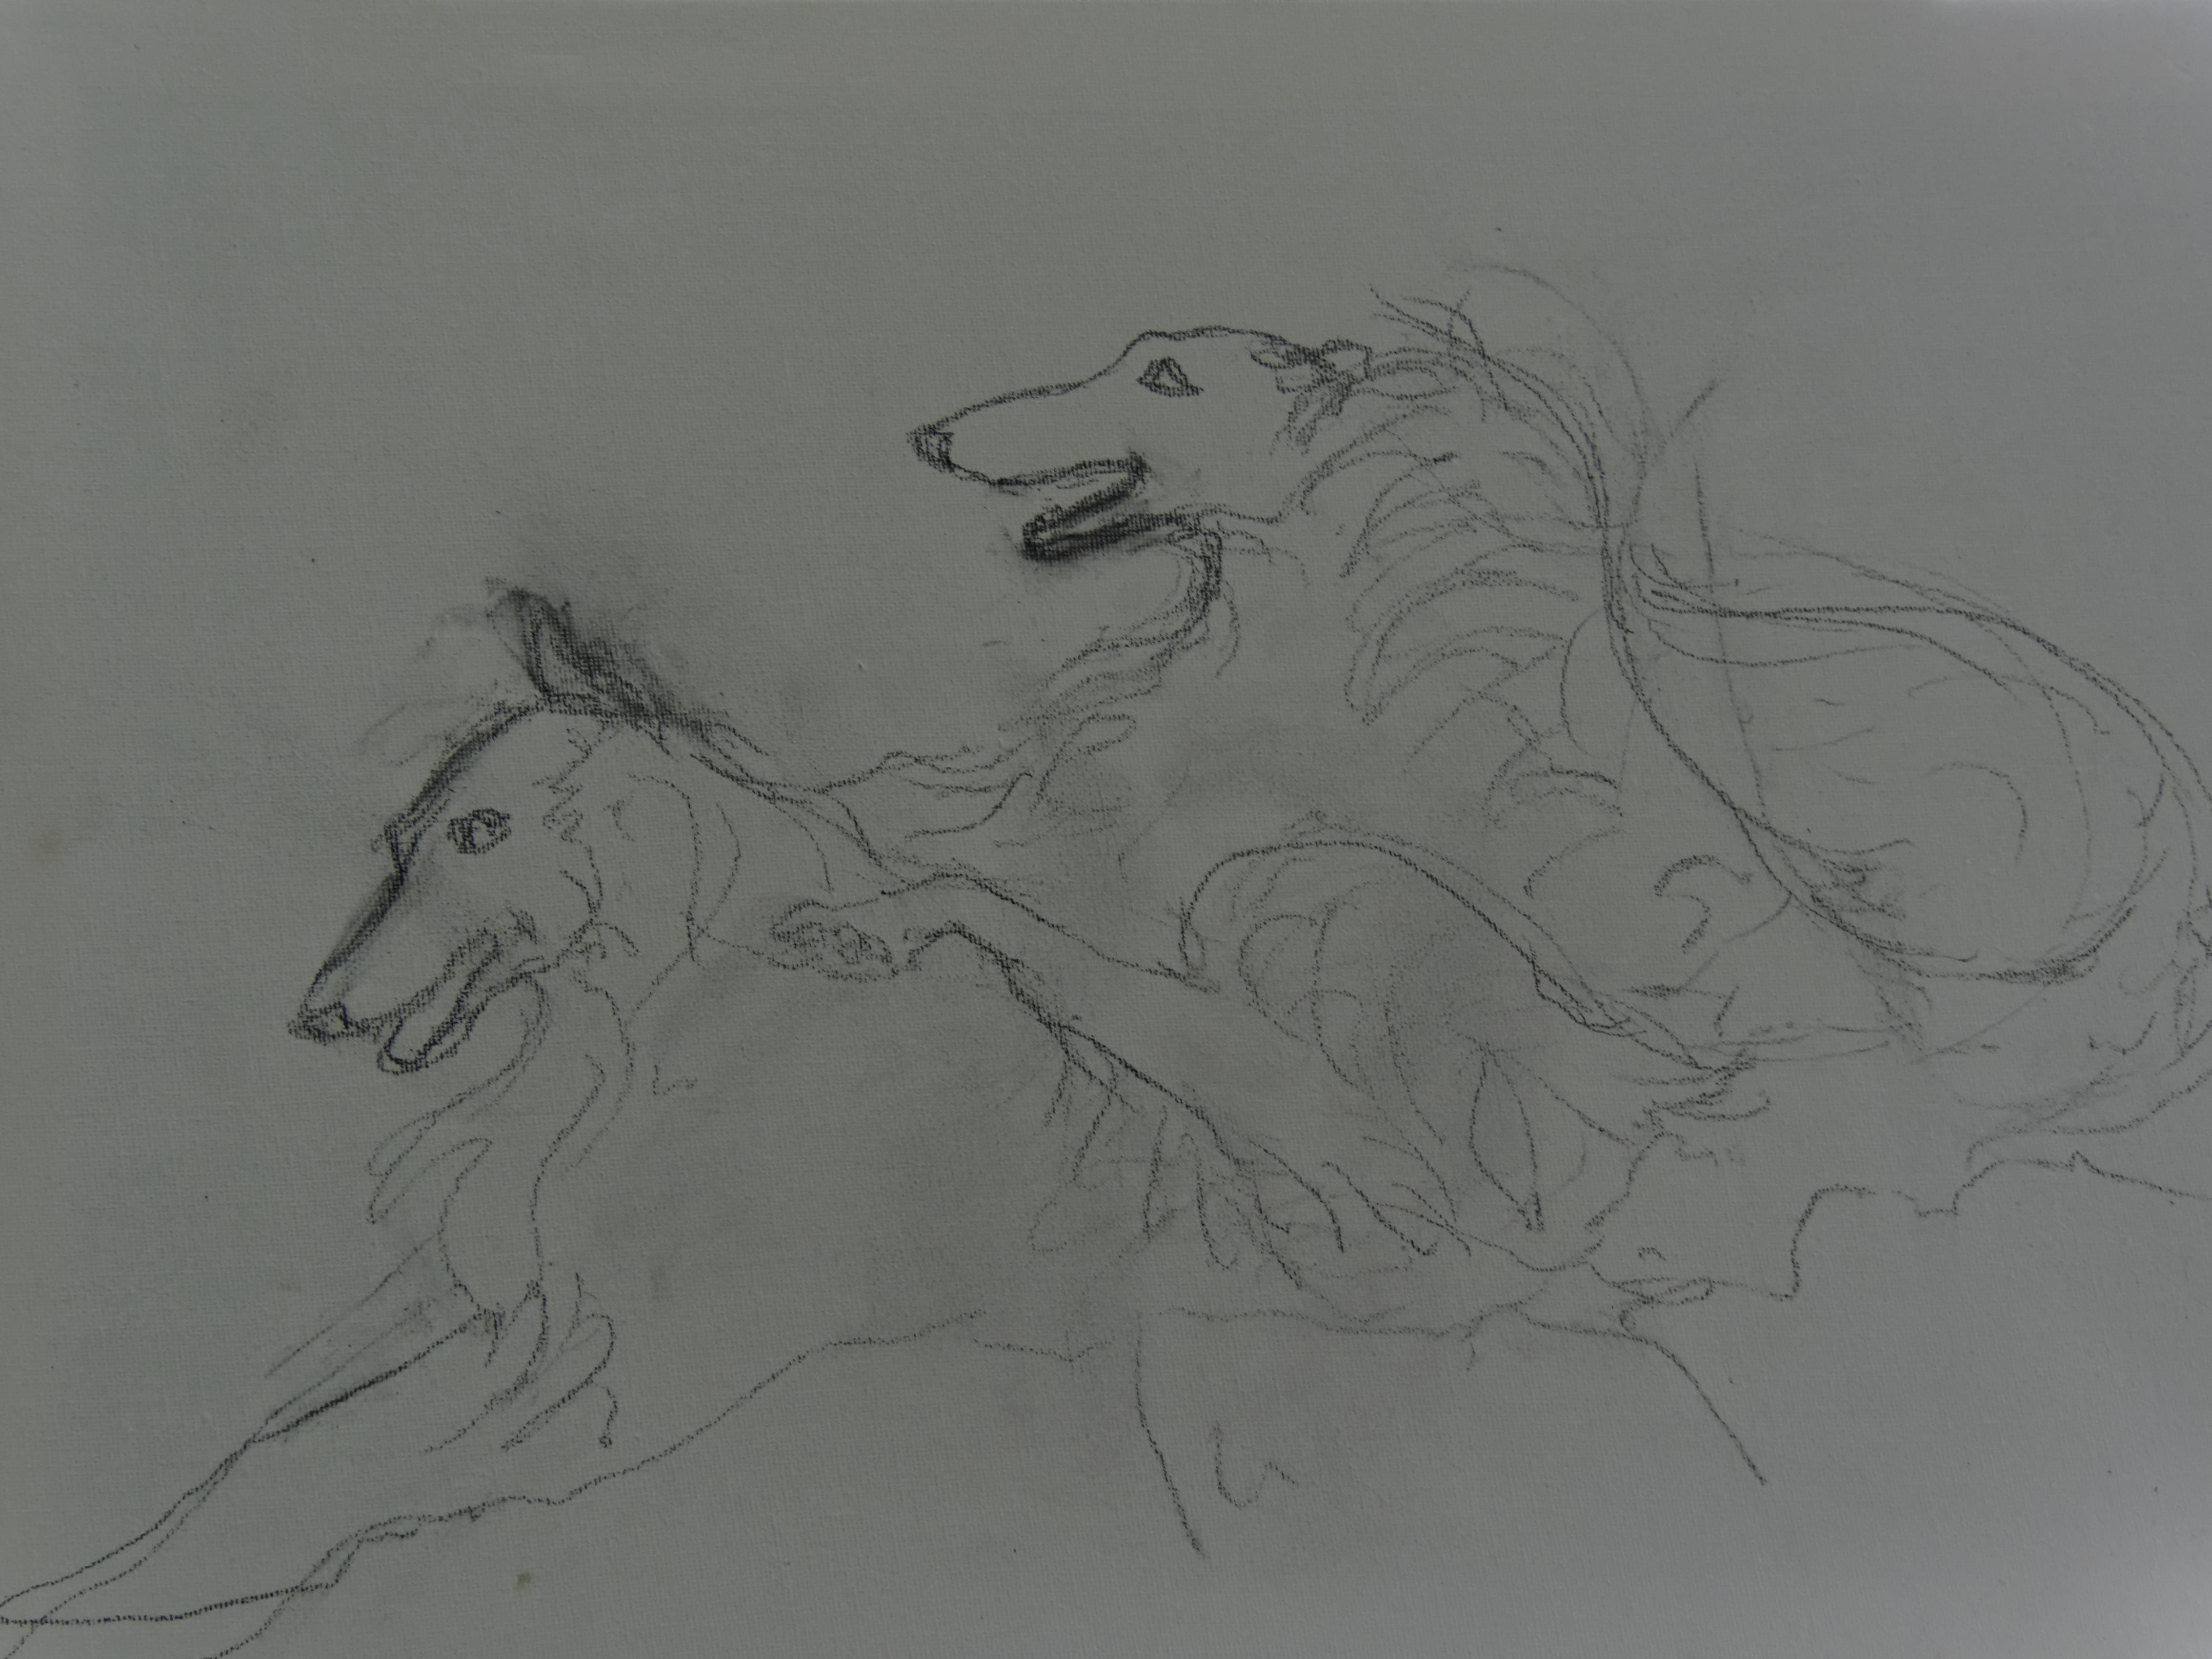 This should be drawing-borzoi-1.jpeg.  Is it missing?